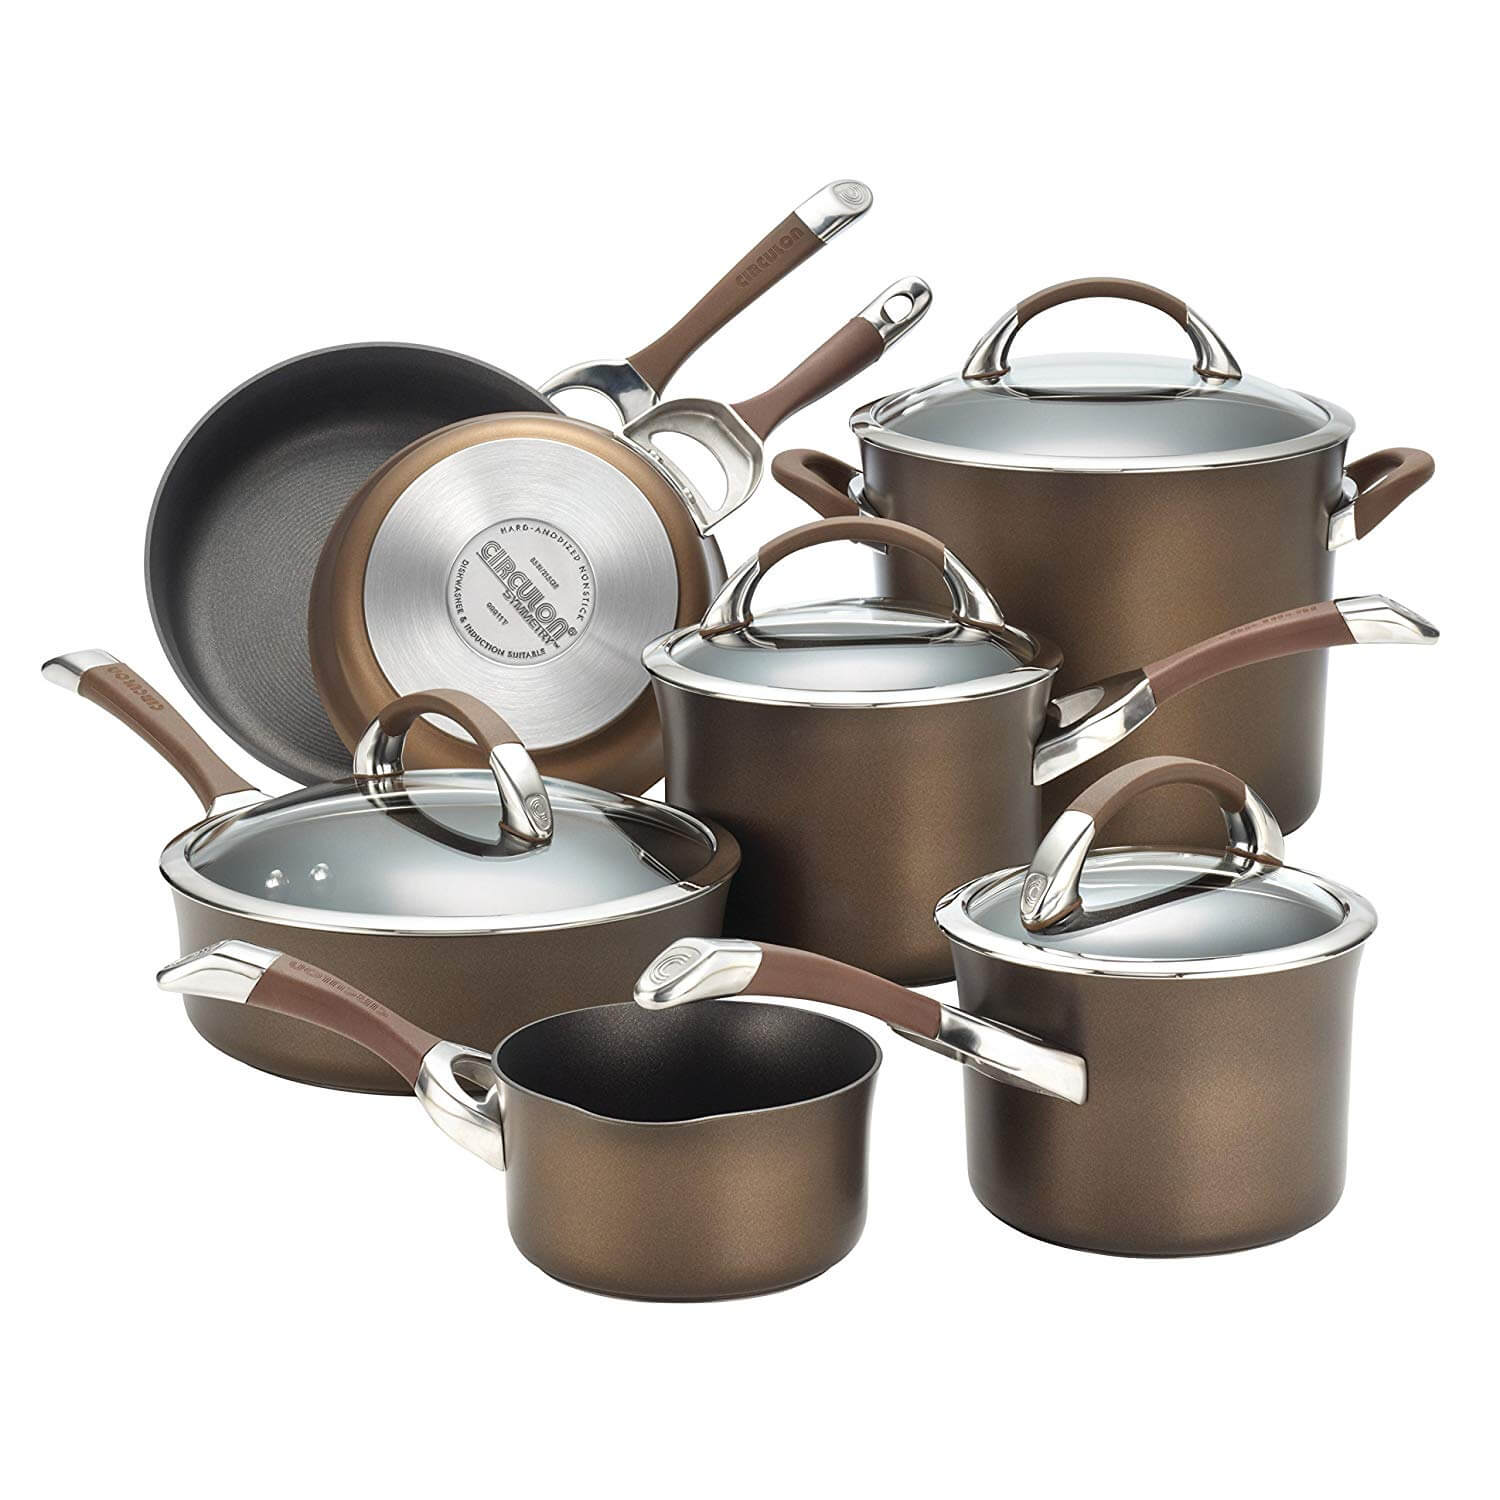 Circulon Symmetry Hard Anodized Non-stick Chocolate Cookware Set